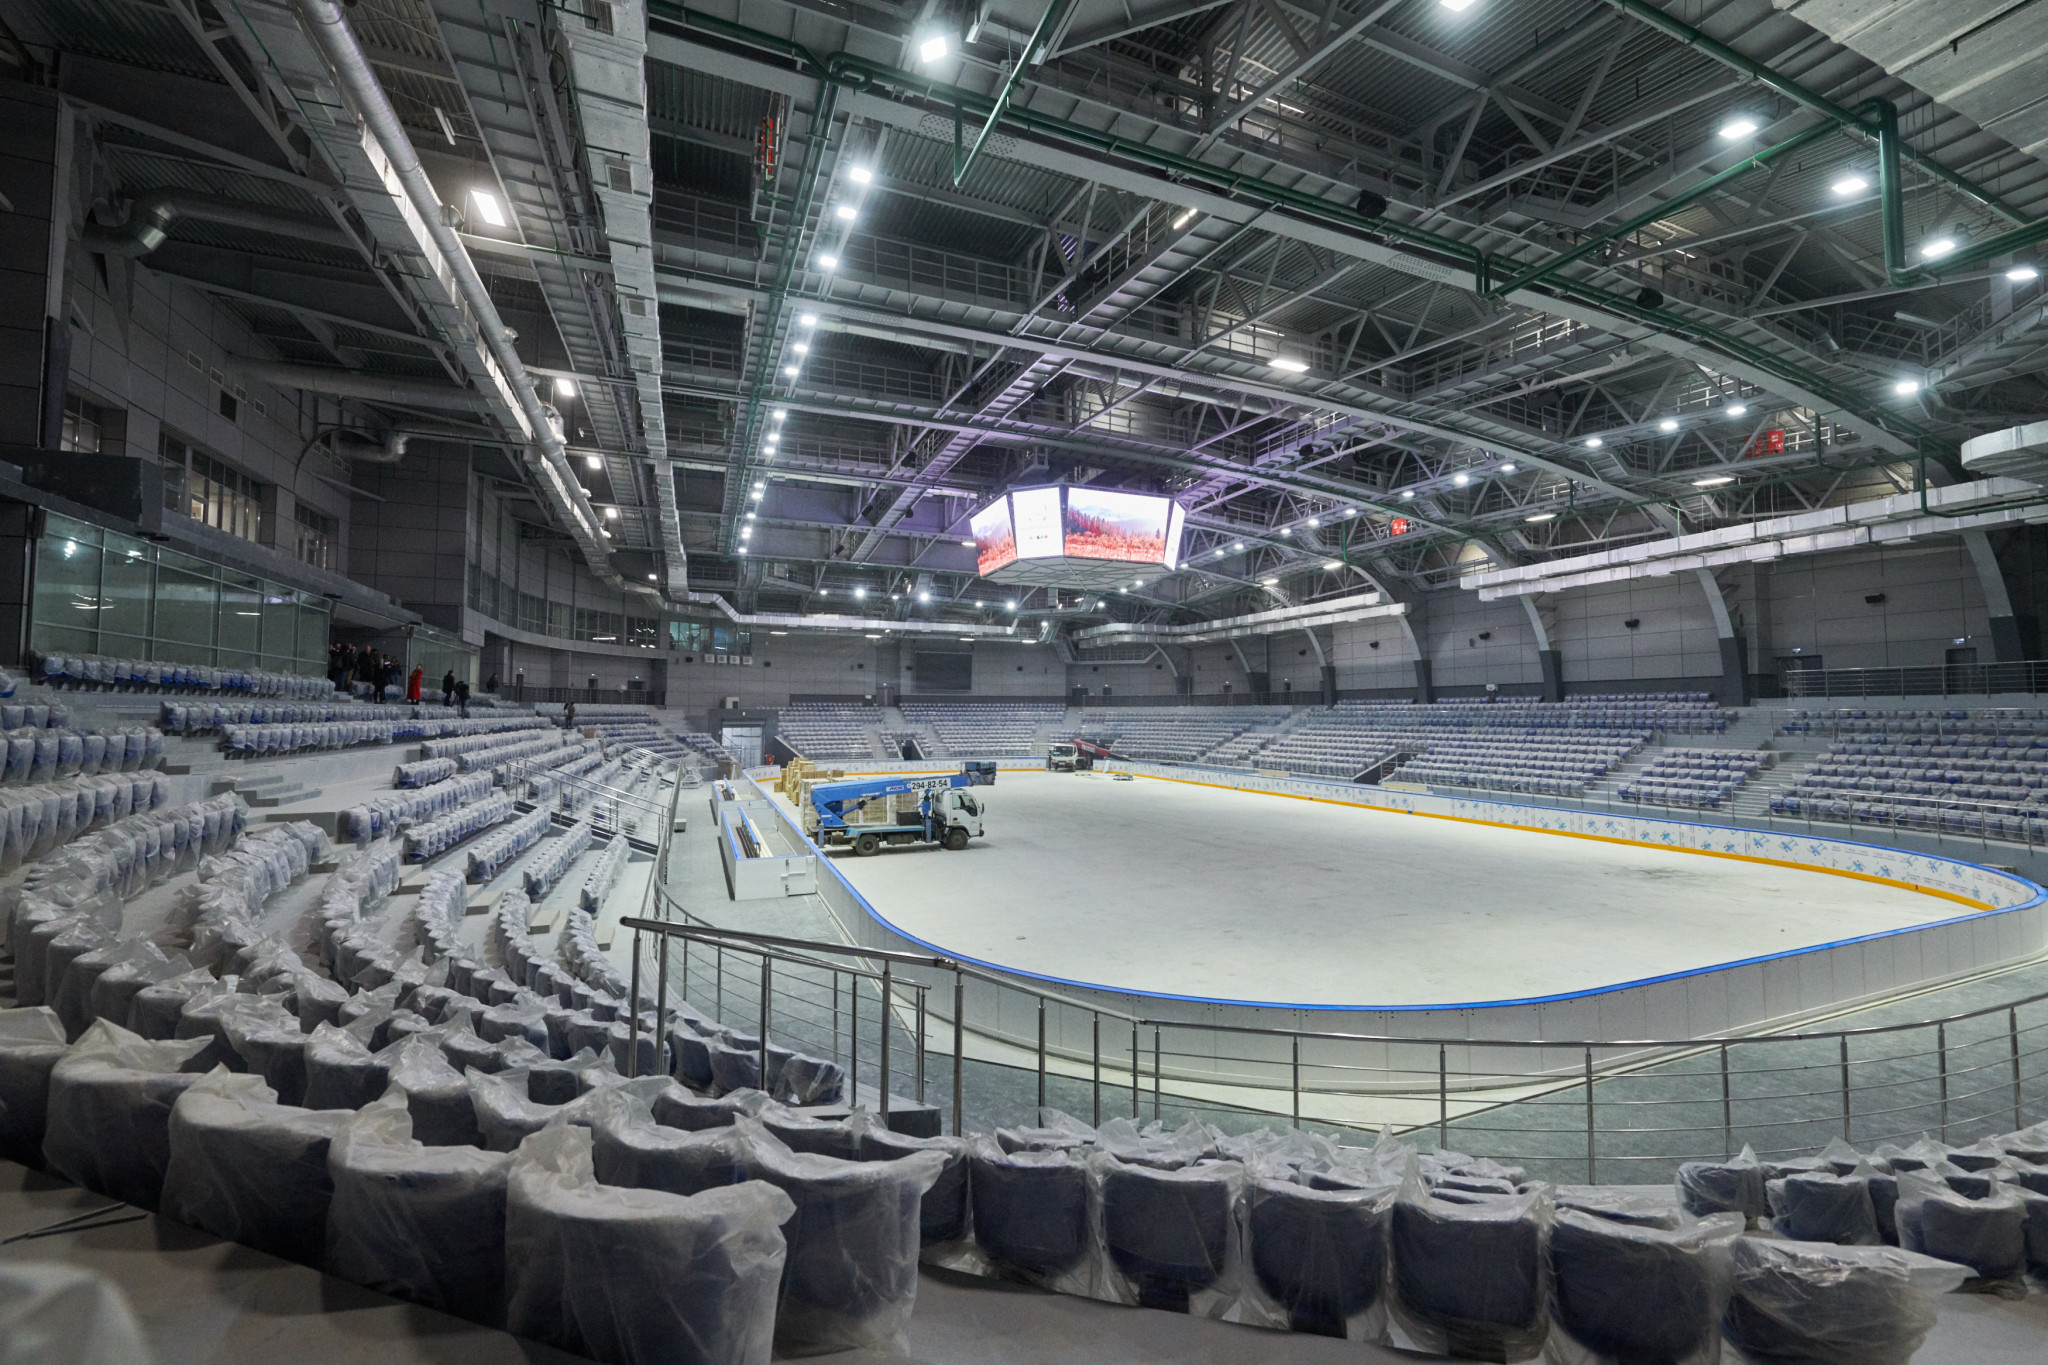 Ice hockey matches at the 2019 Winter Universiade are due to be held at the Crystal Ice Arena ©Krasnoyarsk 2019